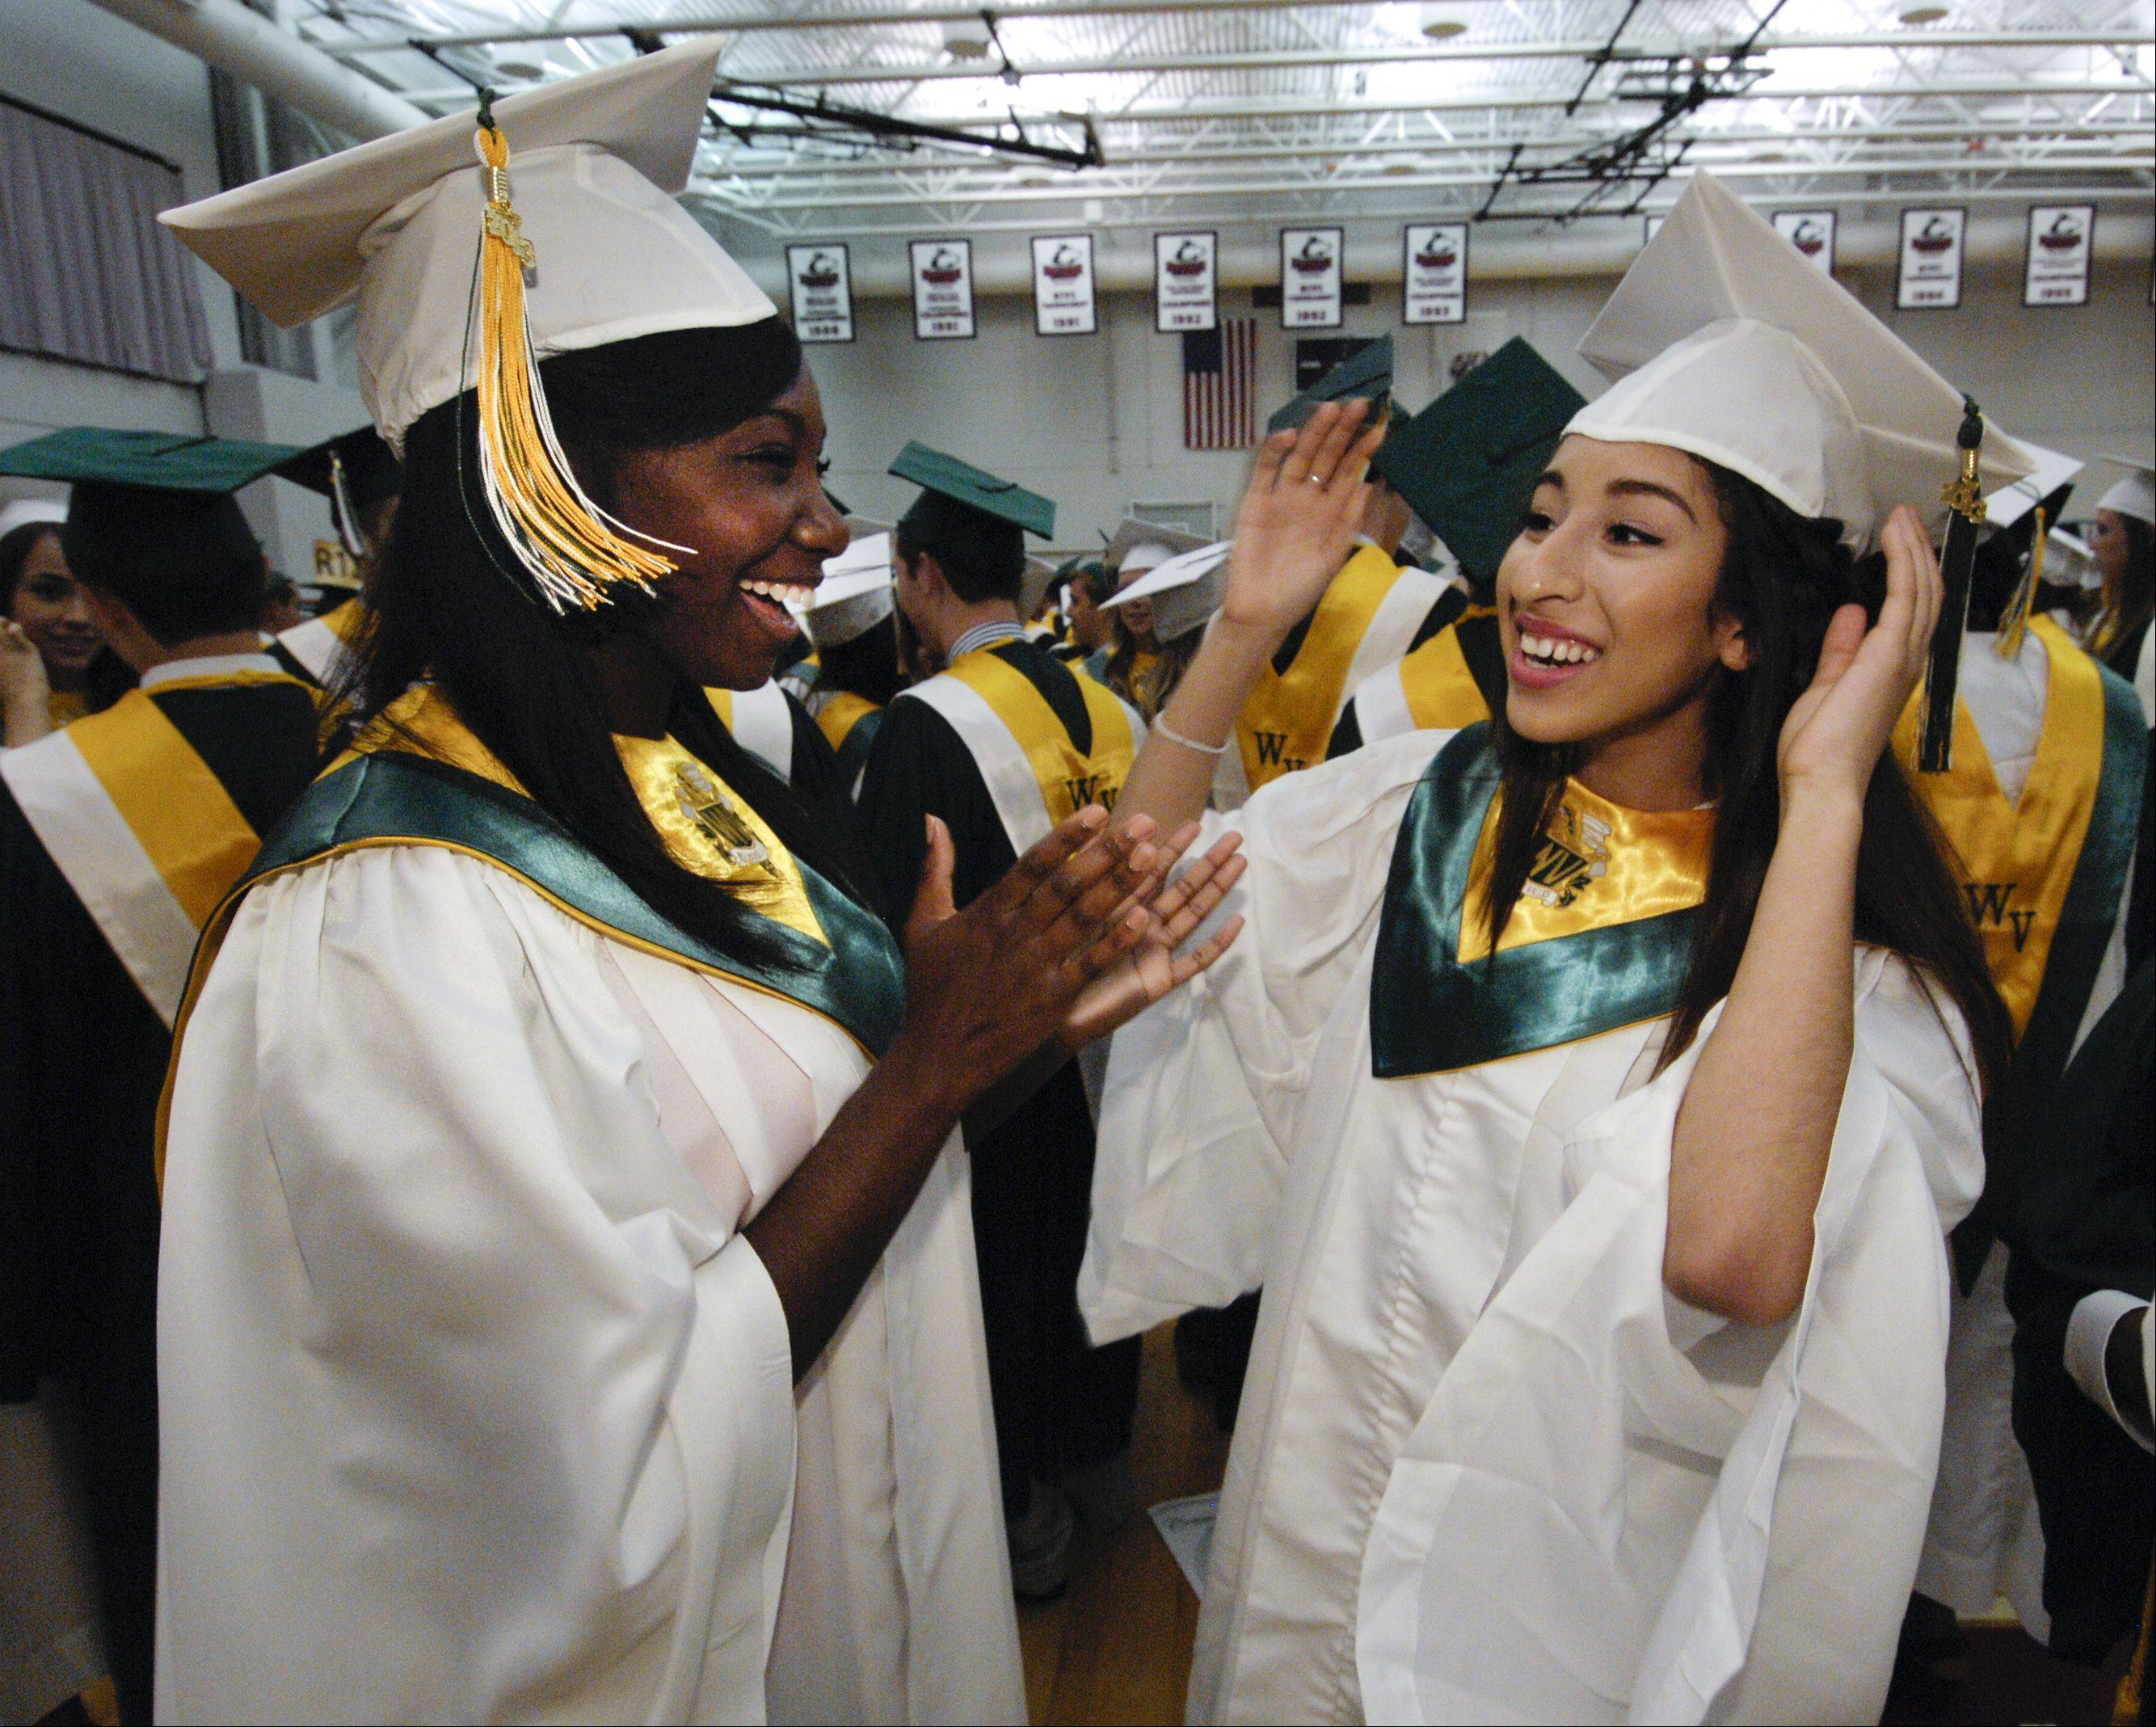 Savannah Price and Melody Sanchez greet each other before the start of the Waubonsie Valley High School graduation on Sunday, May 26 at the NIU Convocation Center in DeKalb.